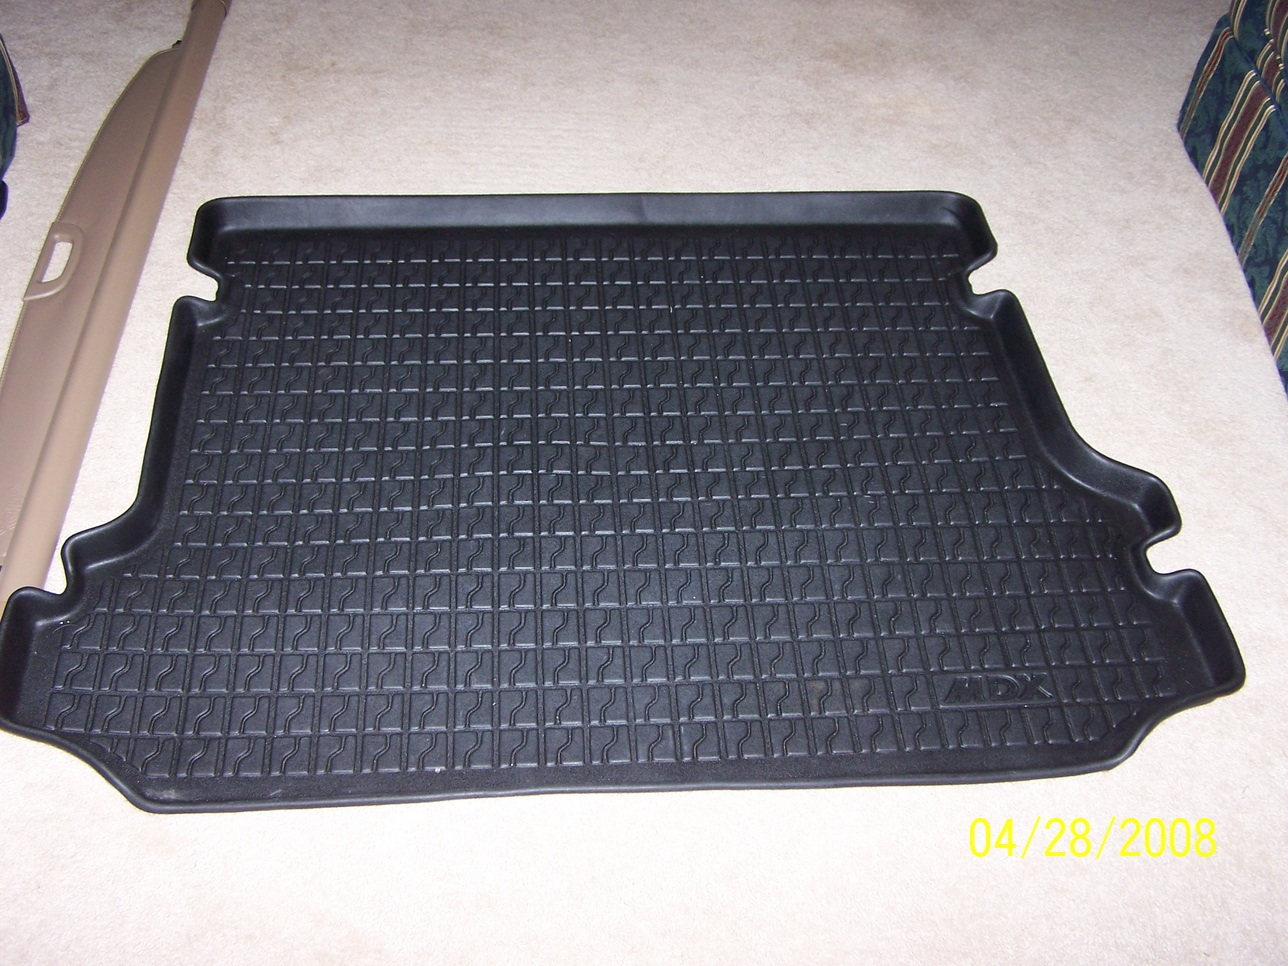 Cargo Tray/Cargo Cover for Sale-rsz_100_3738.jpg